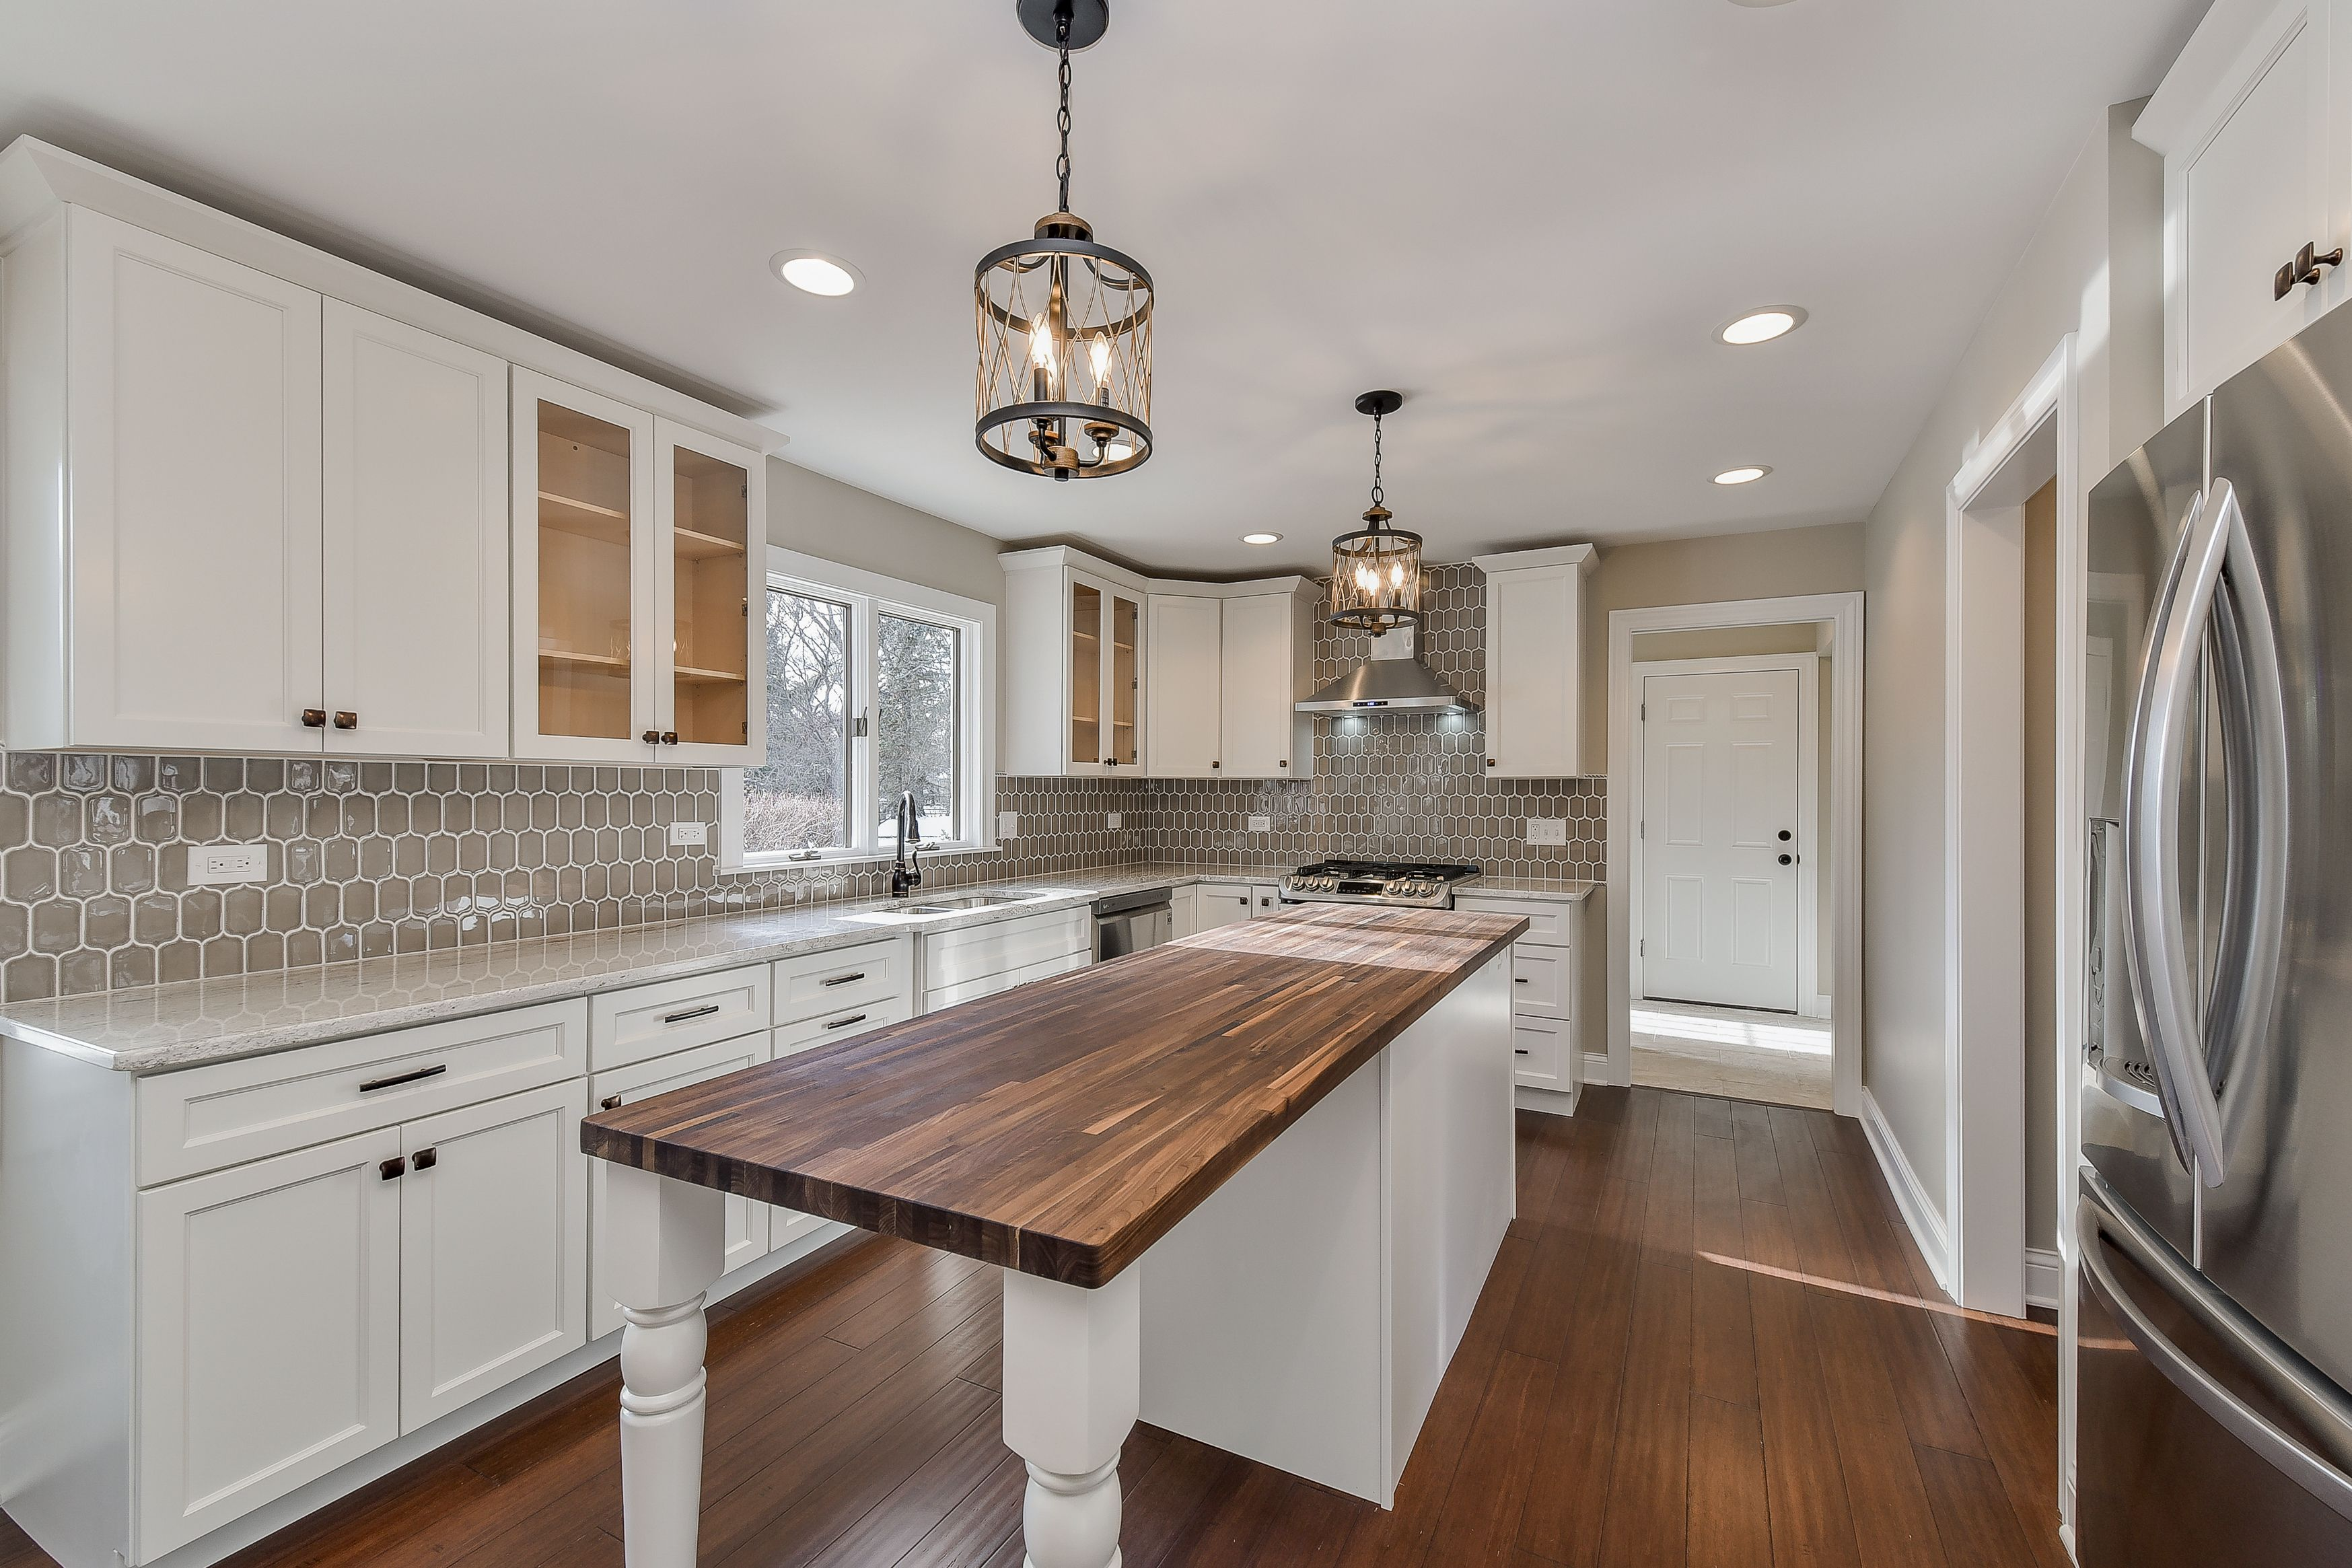 White Cabinets With Granite And Butcher